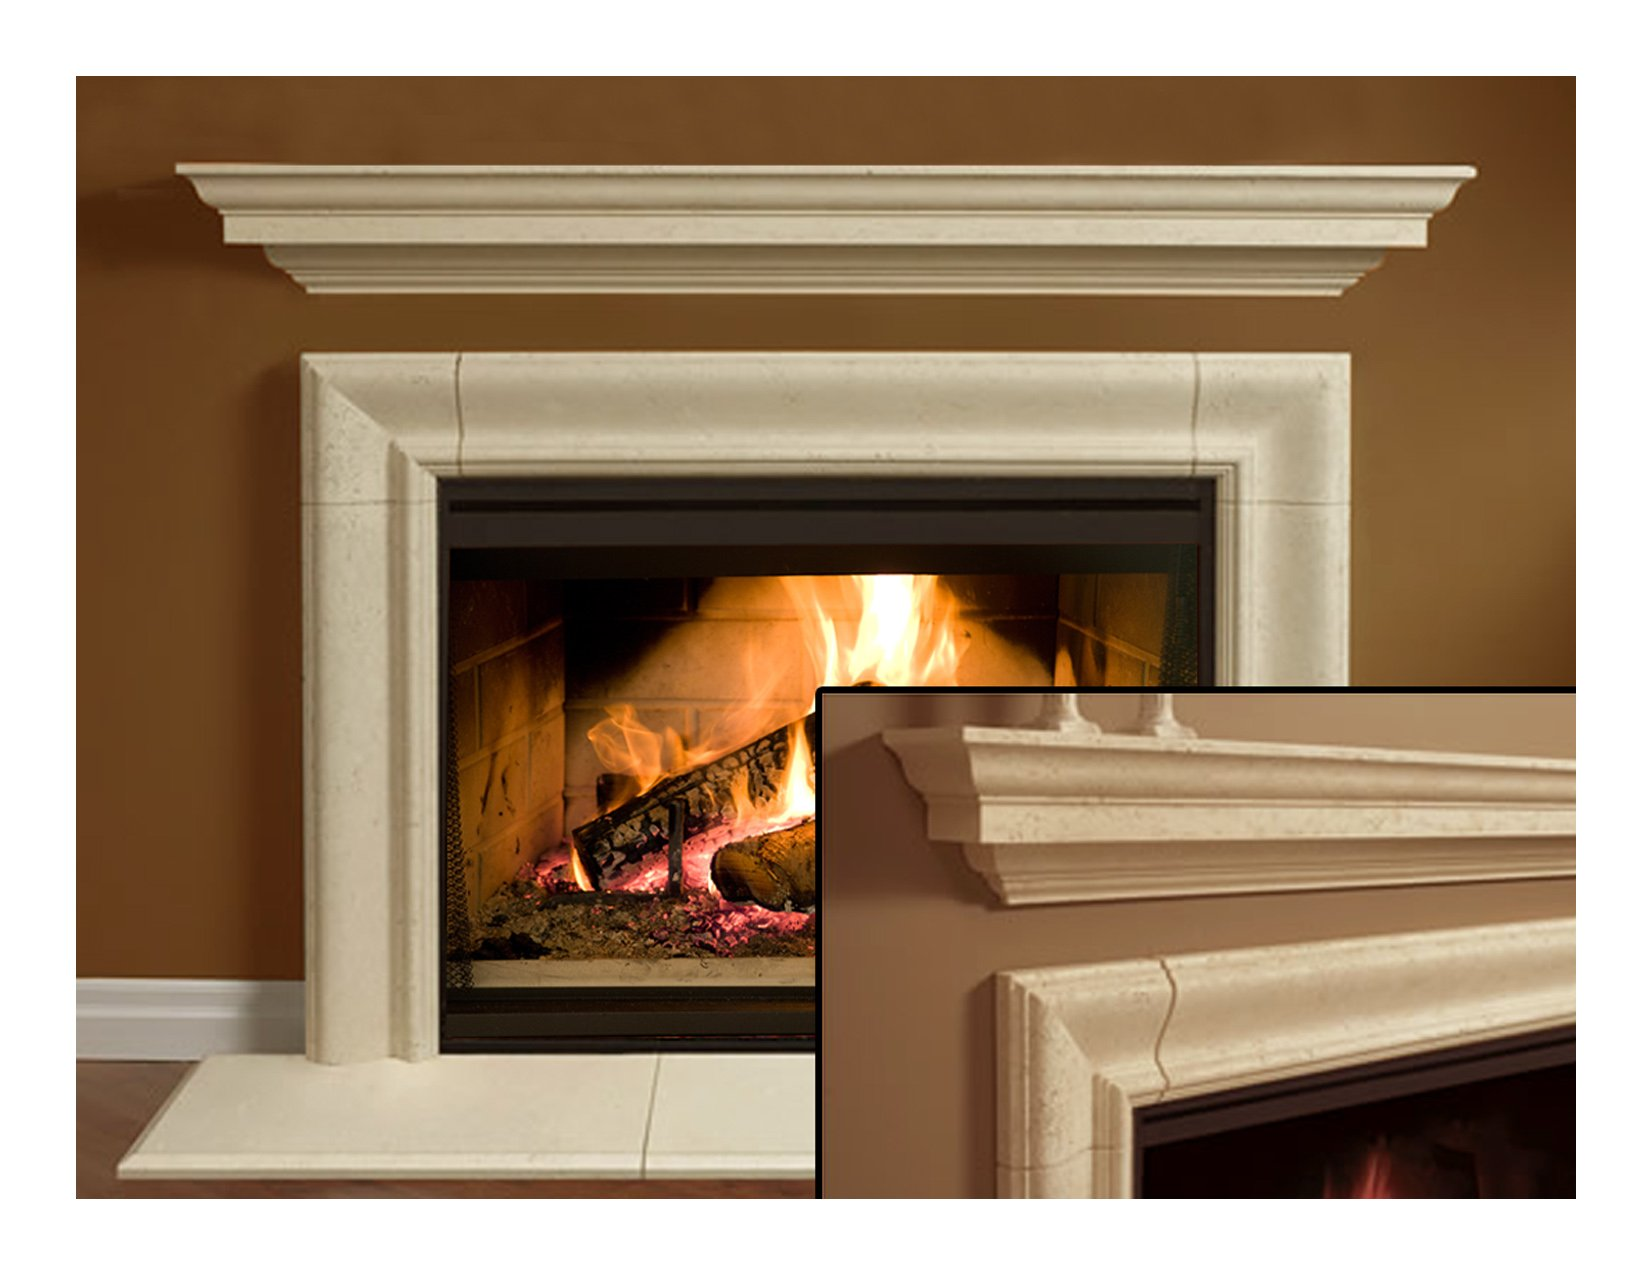 Wellington Thin Cast Stone Adustable Fireplace Mantel Kit - Complete Kit includes hearth by Cast Stone Mantel America